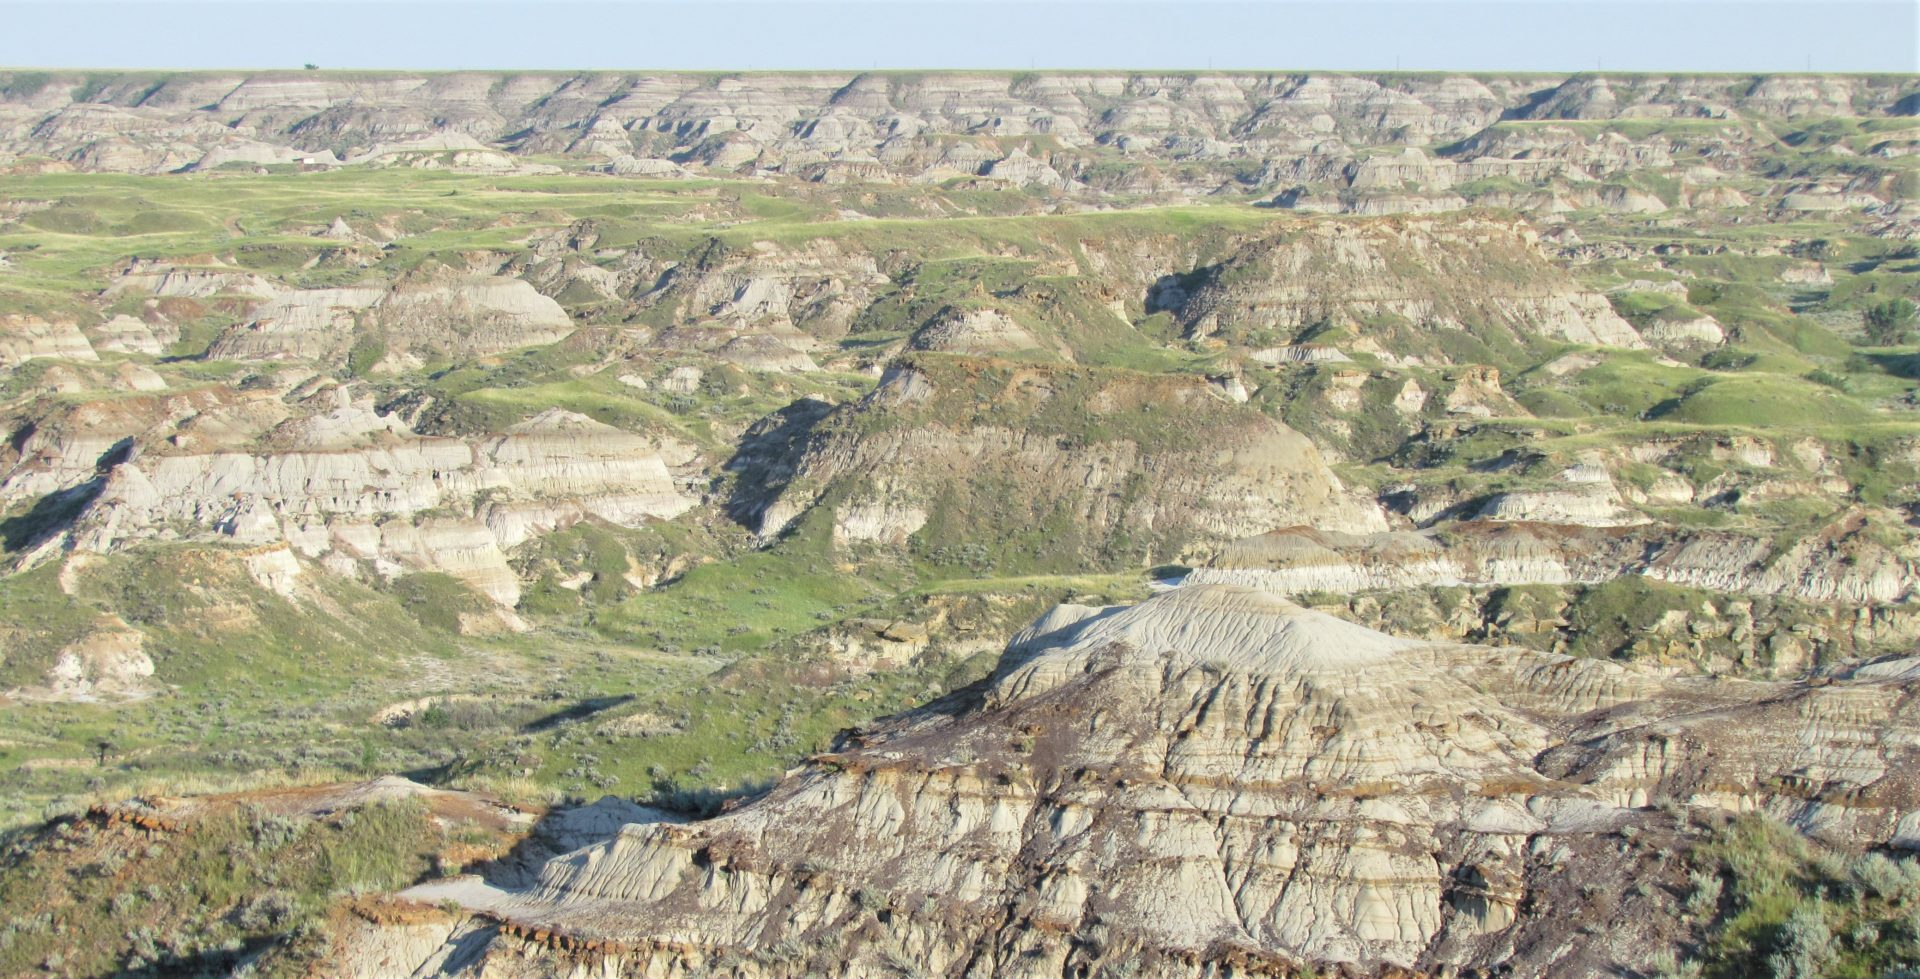 Alberta Badlands – July 28 to Aug 1